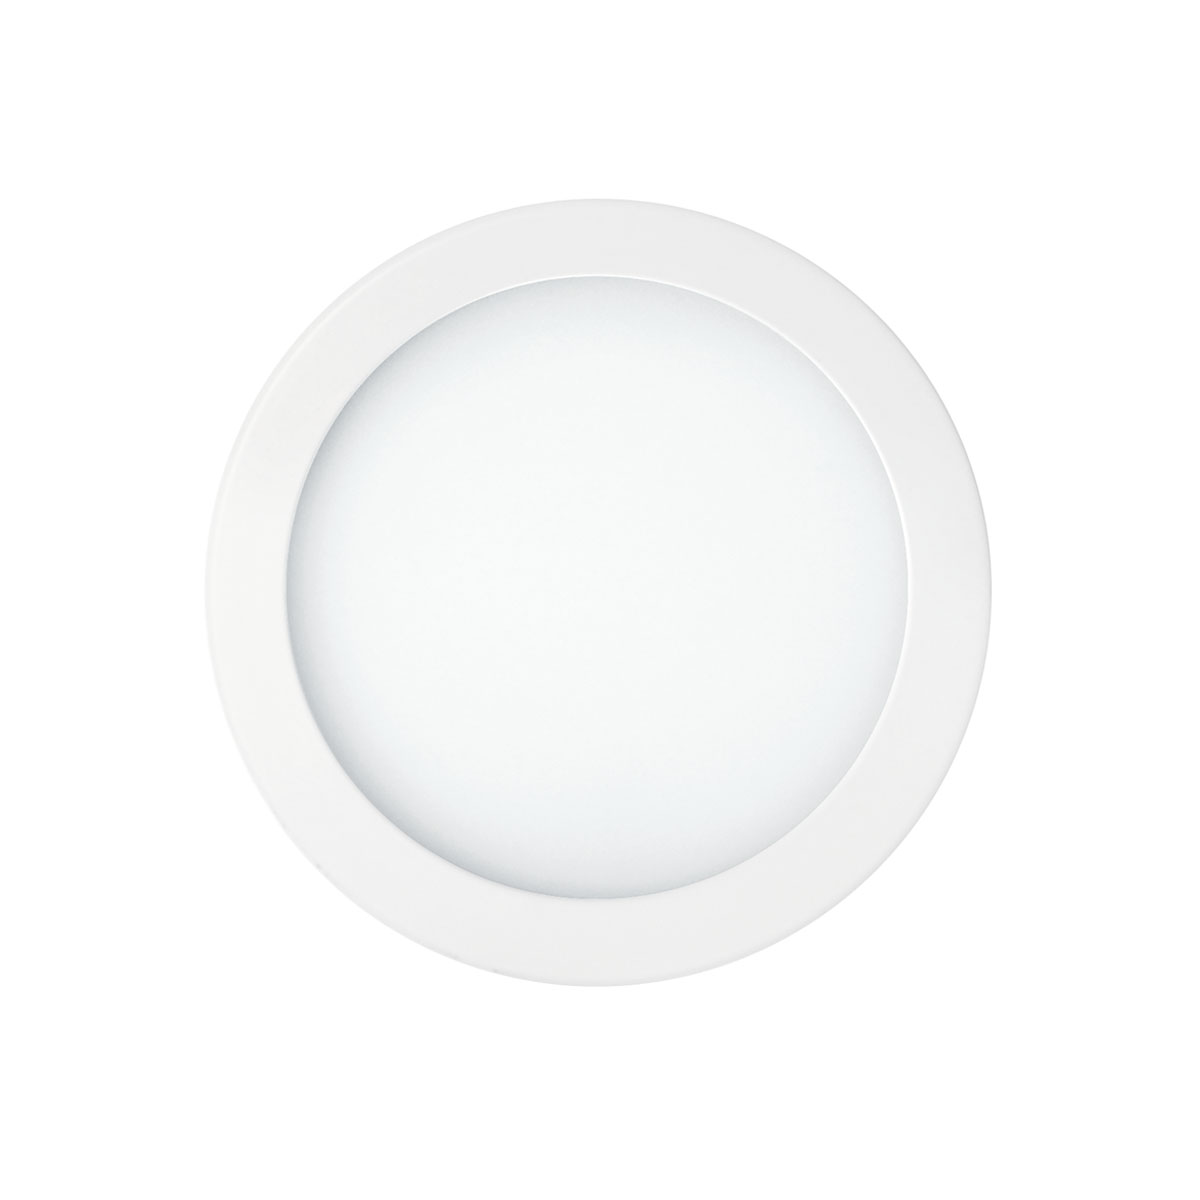 ECODUCTO Indoor Downlight Lighting